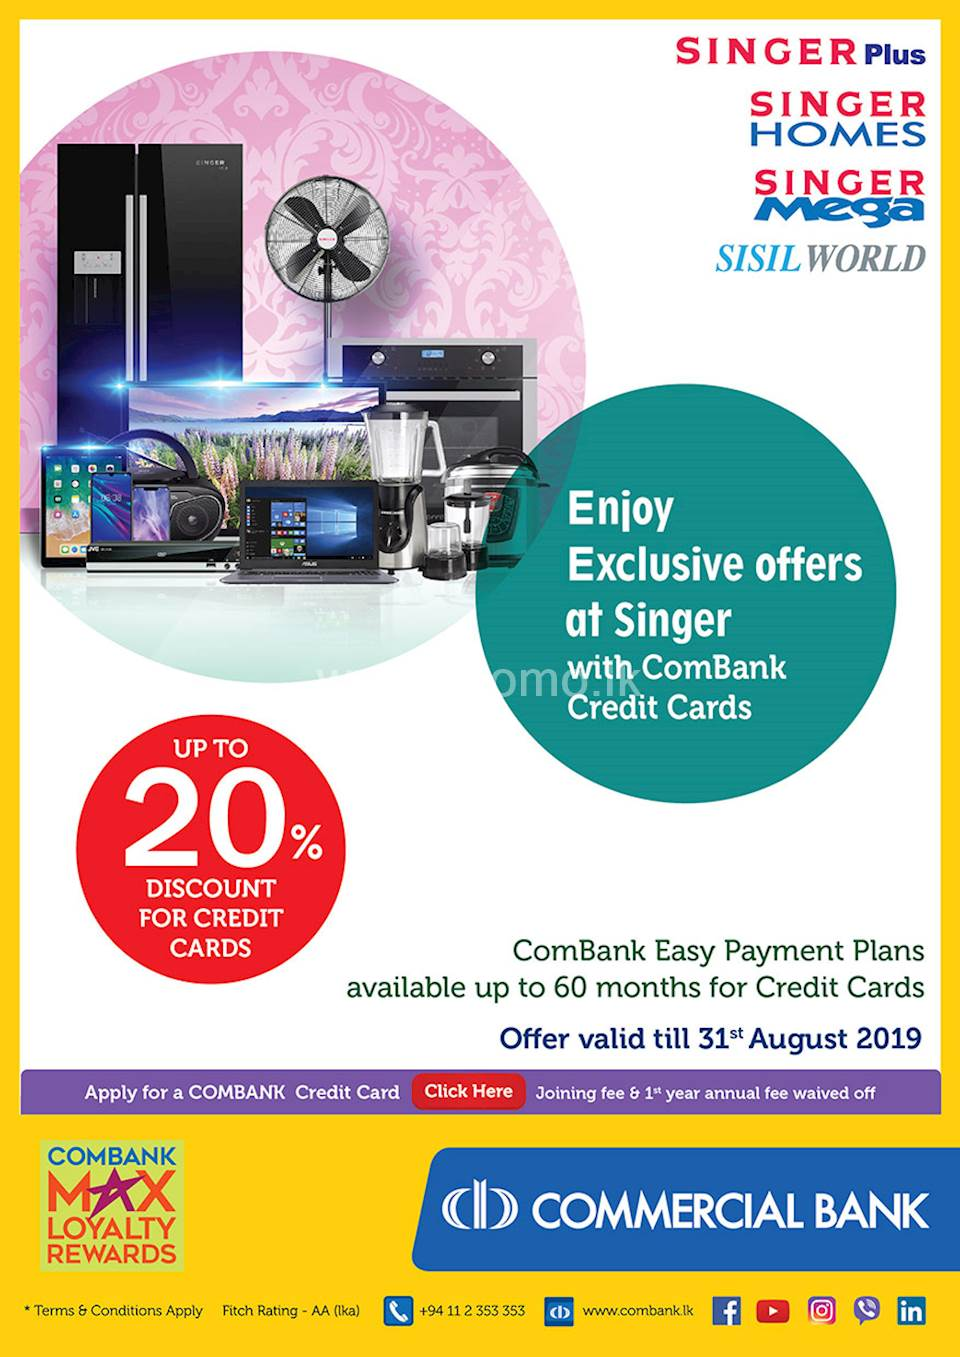 Combank easy payment plans available up to 12months for Credit cards at Singer